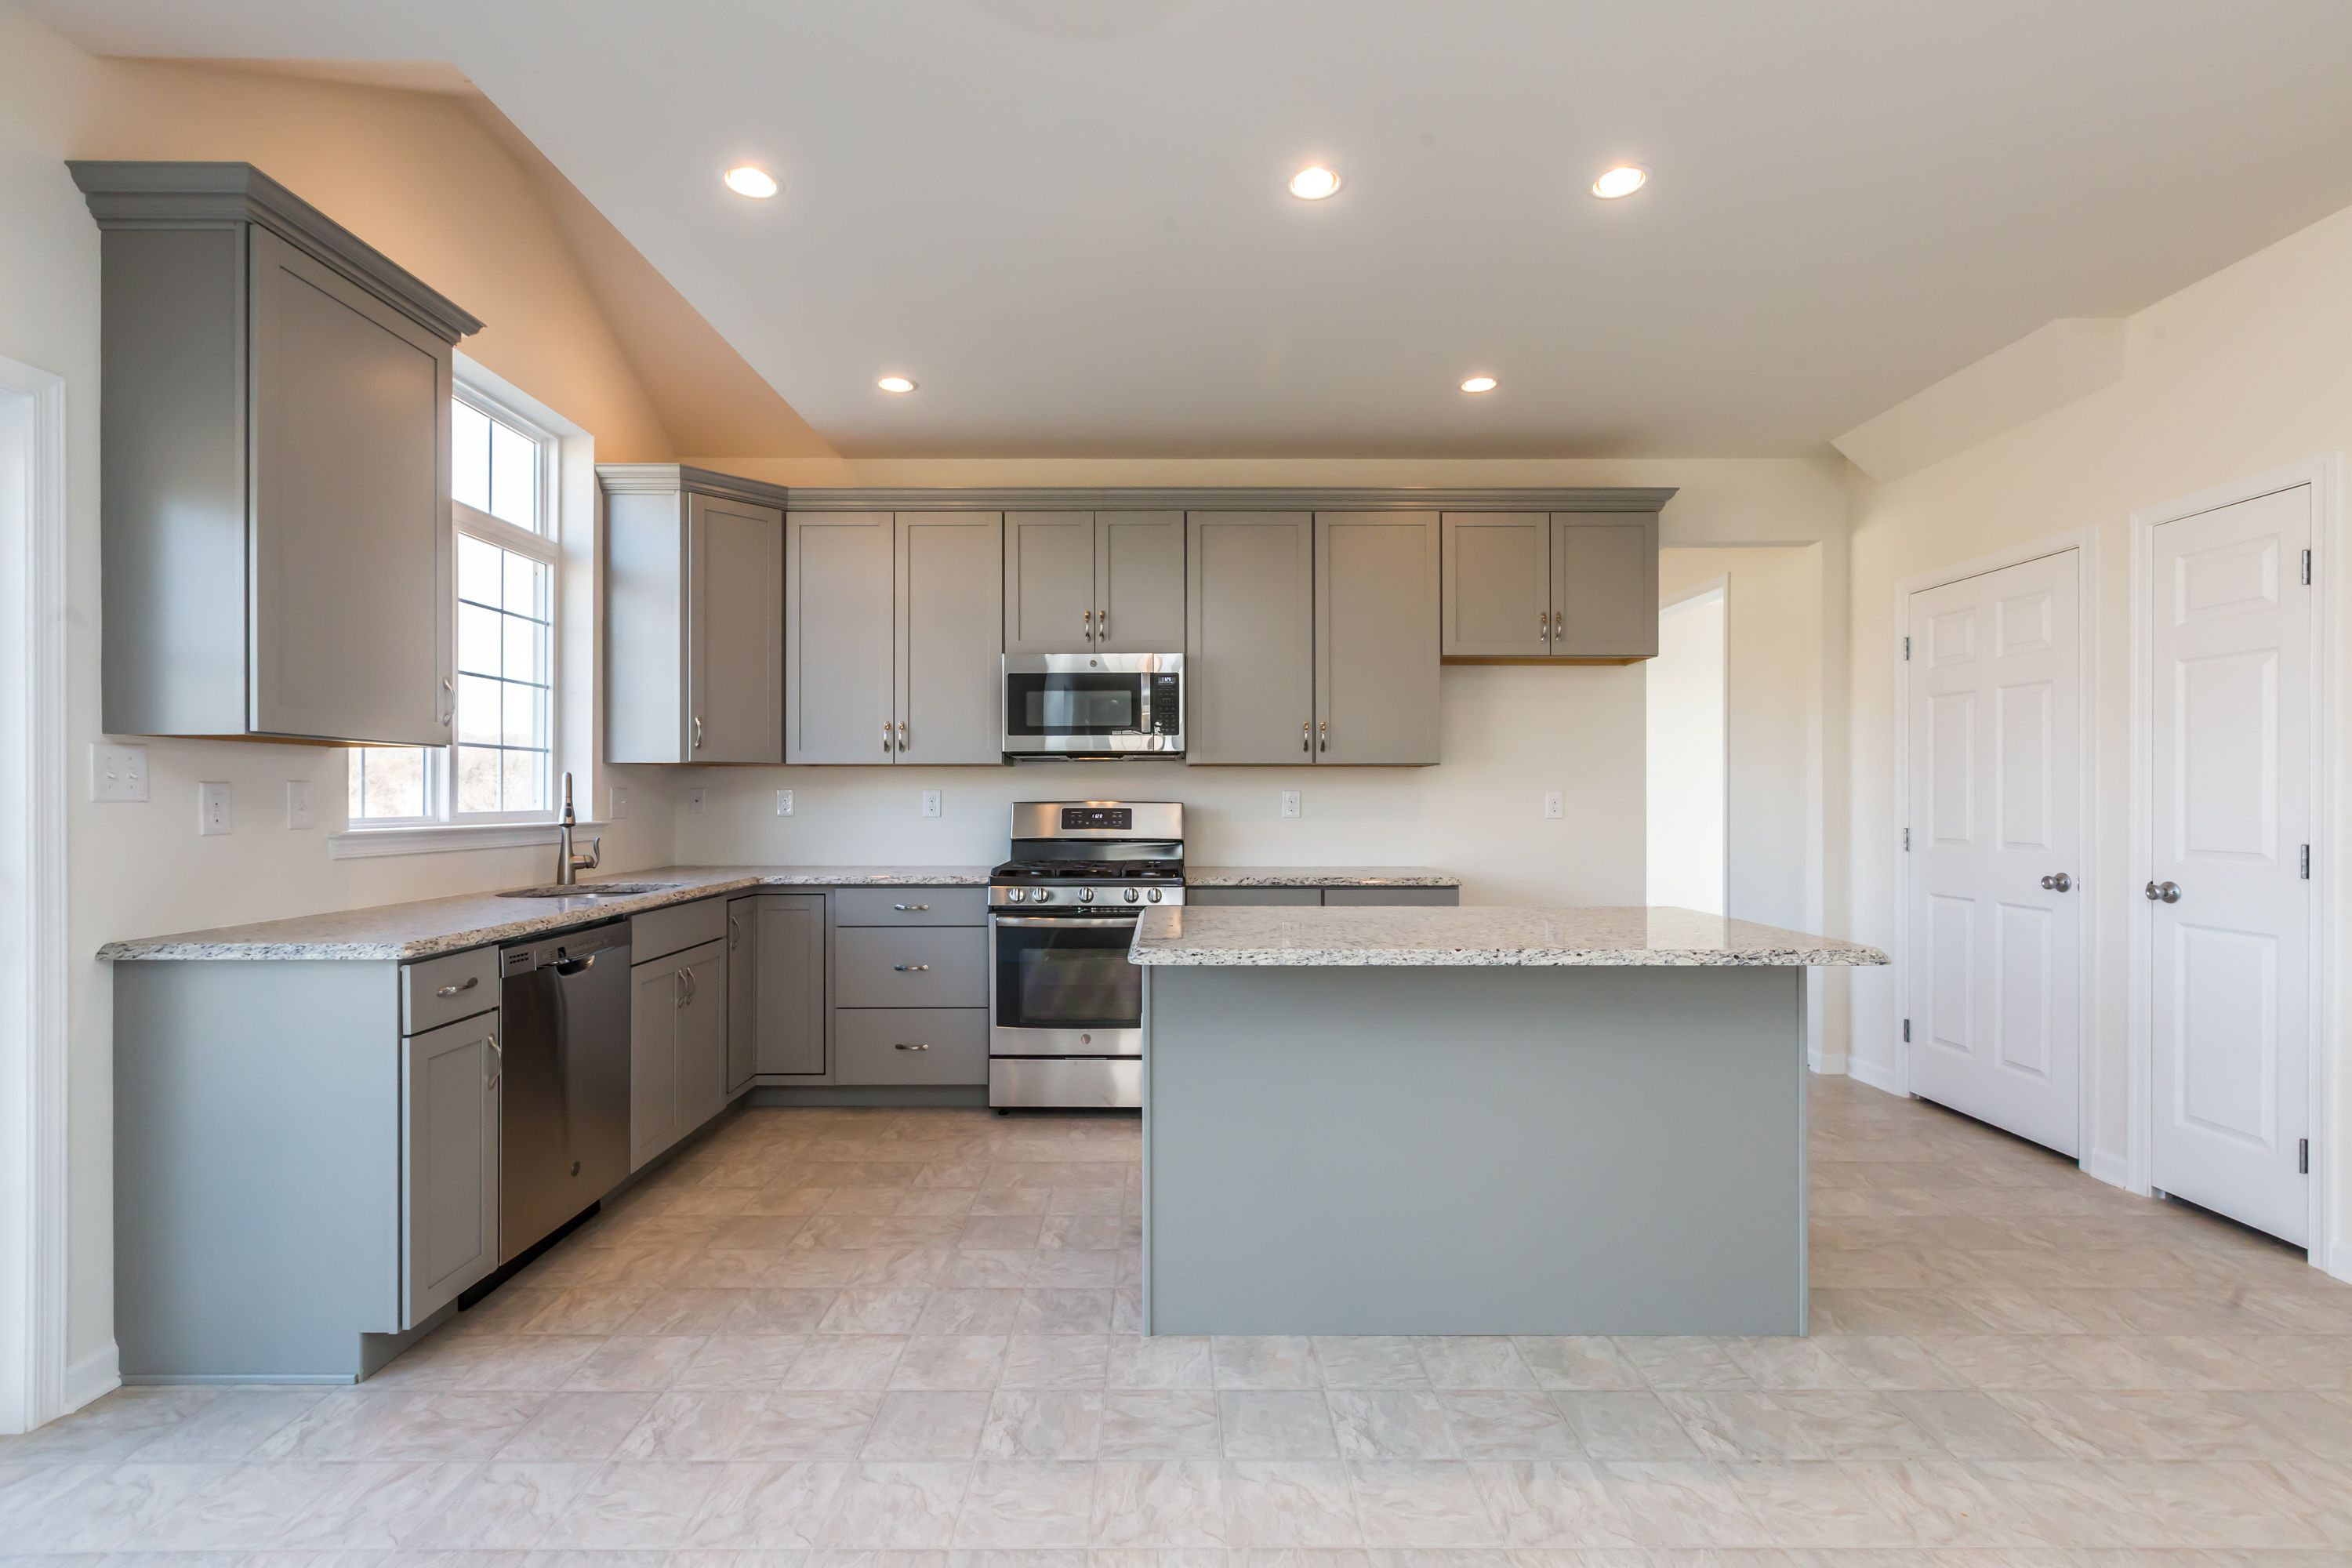 Kitchen featured in the Woodbine Select By Rouse Chamberlin Homes in Philadelphia, PA